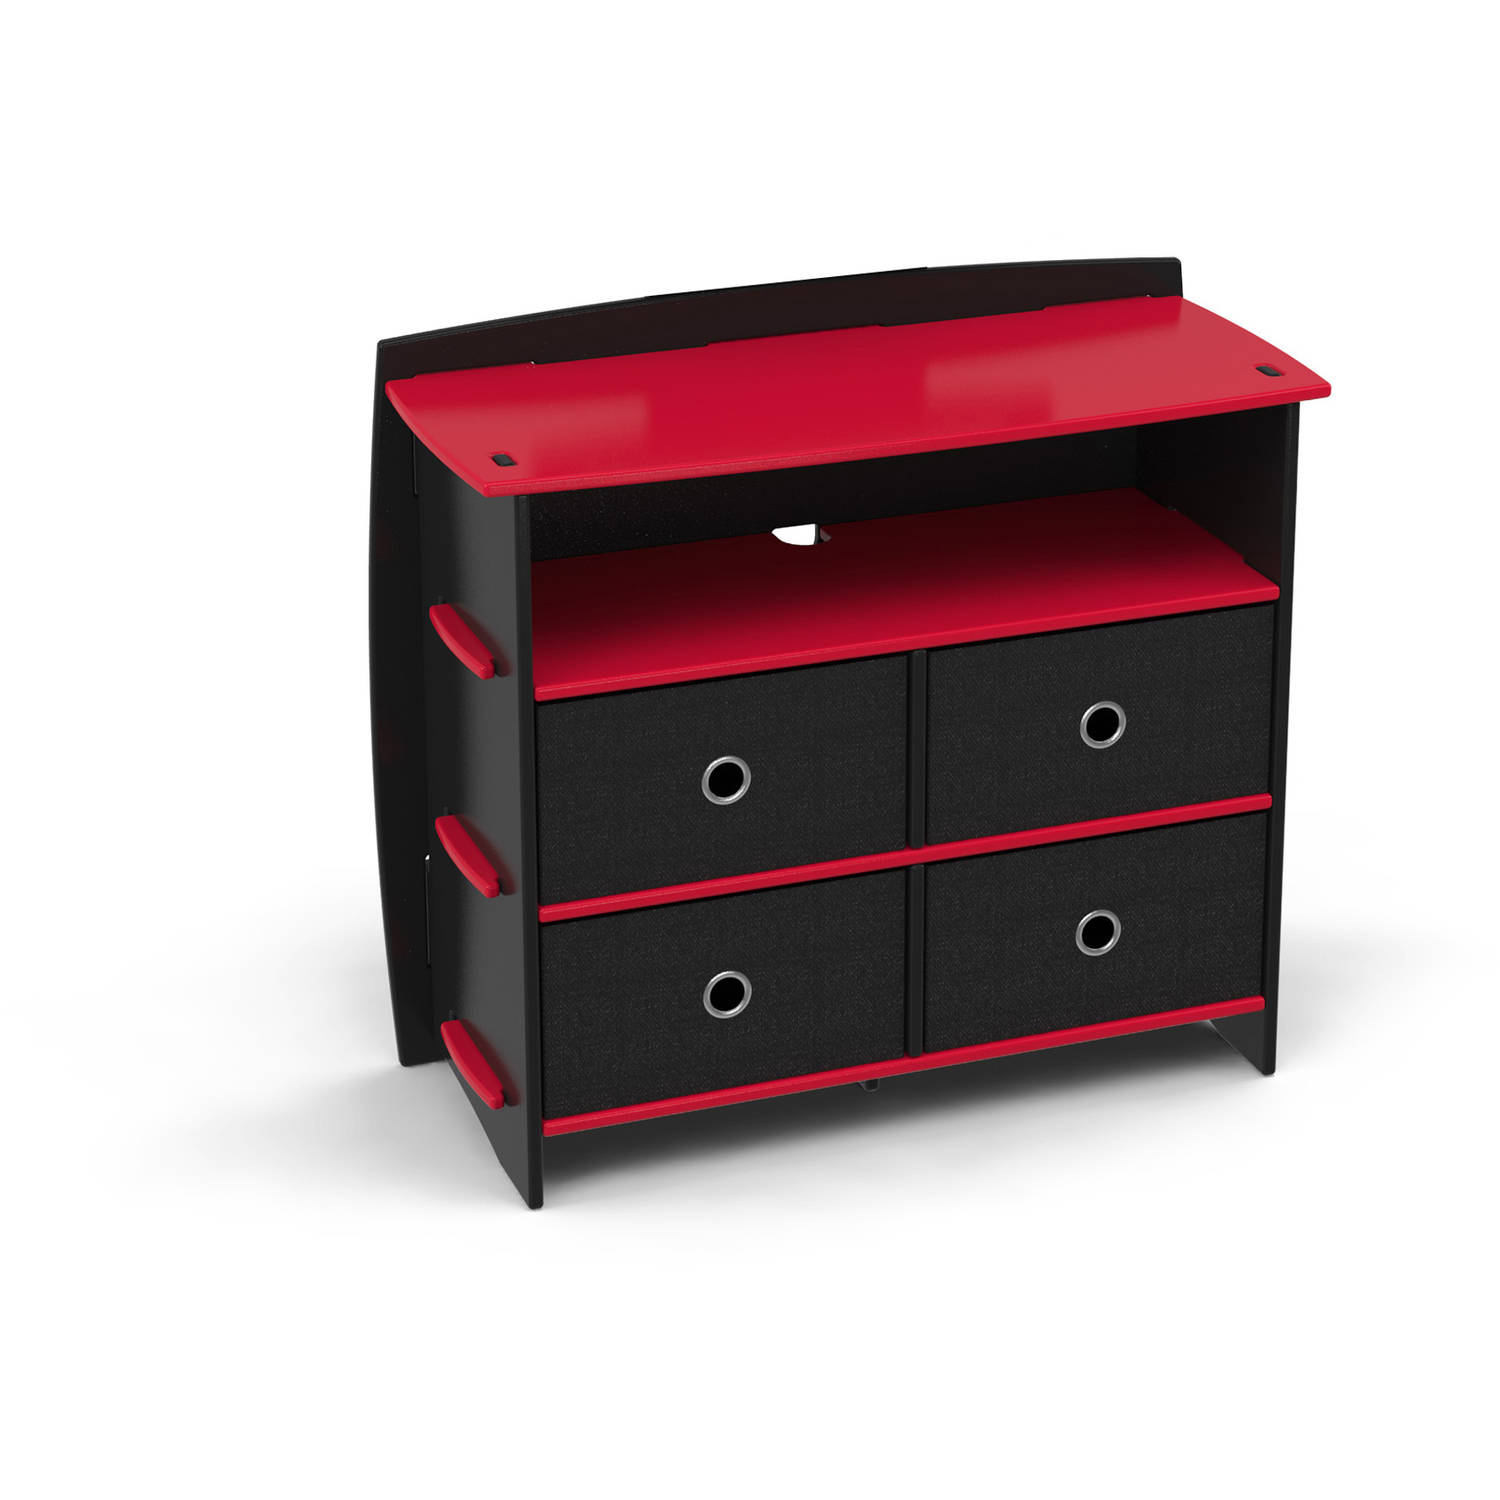 Legare Kids Furniture Red Race Car Collection 4-Drawer Dresser, Red and Black by Kittrich Corporation